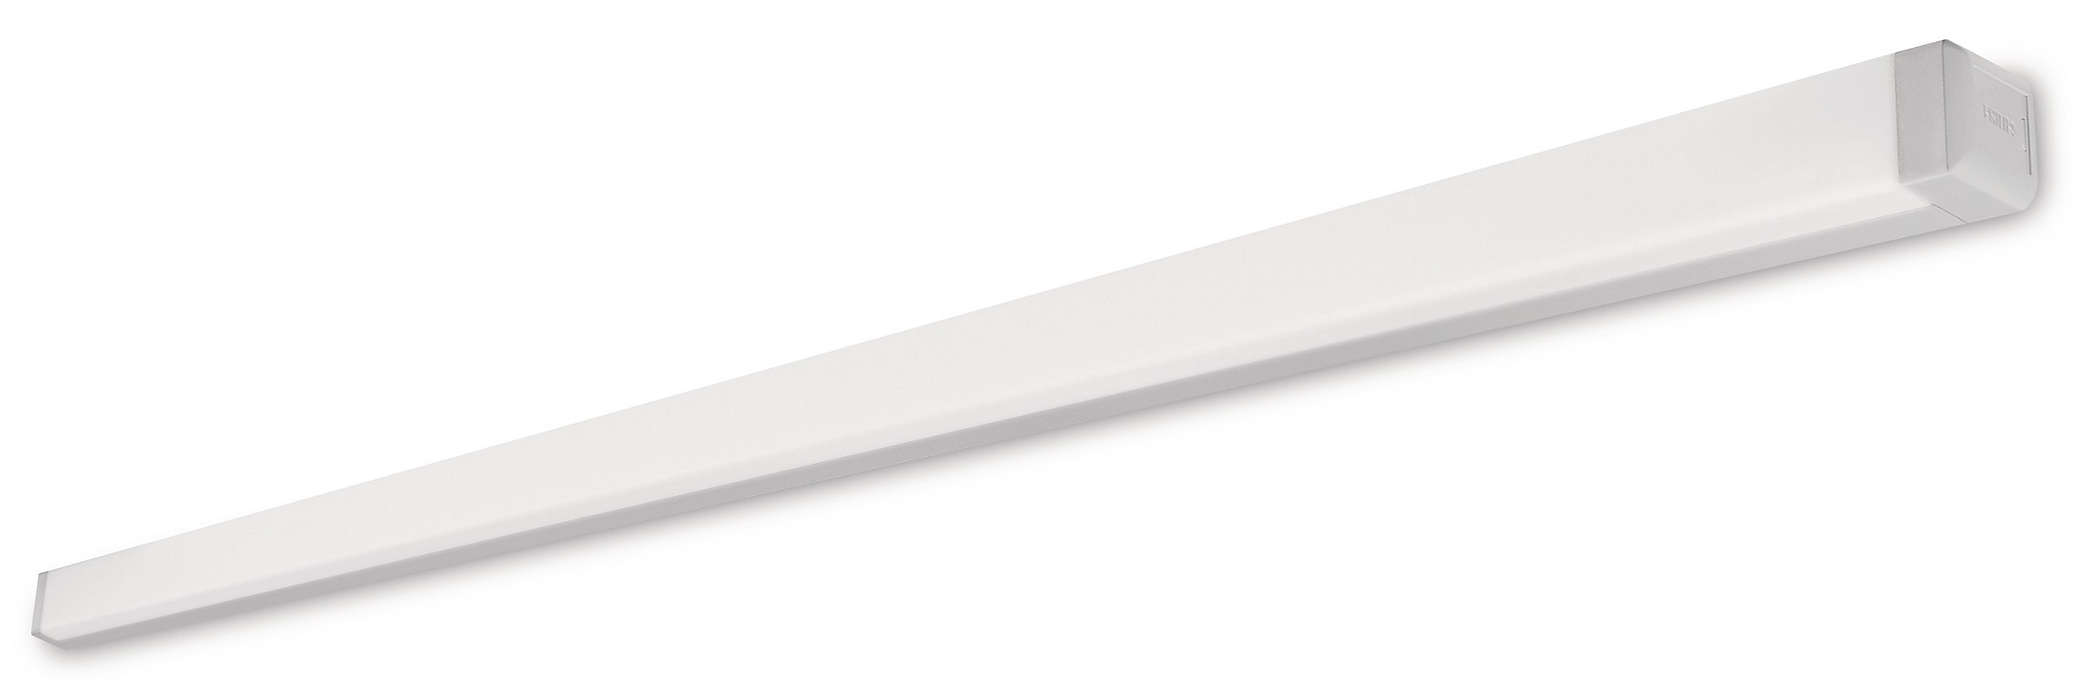 Linear lighting with a zest